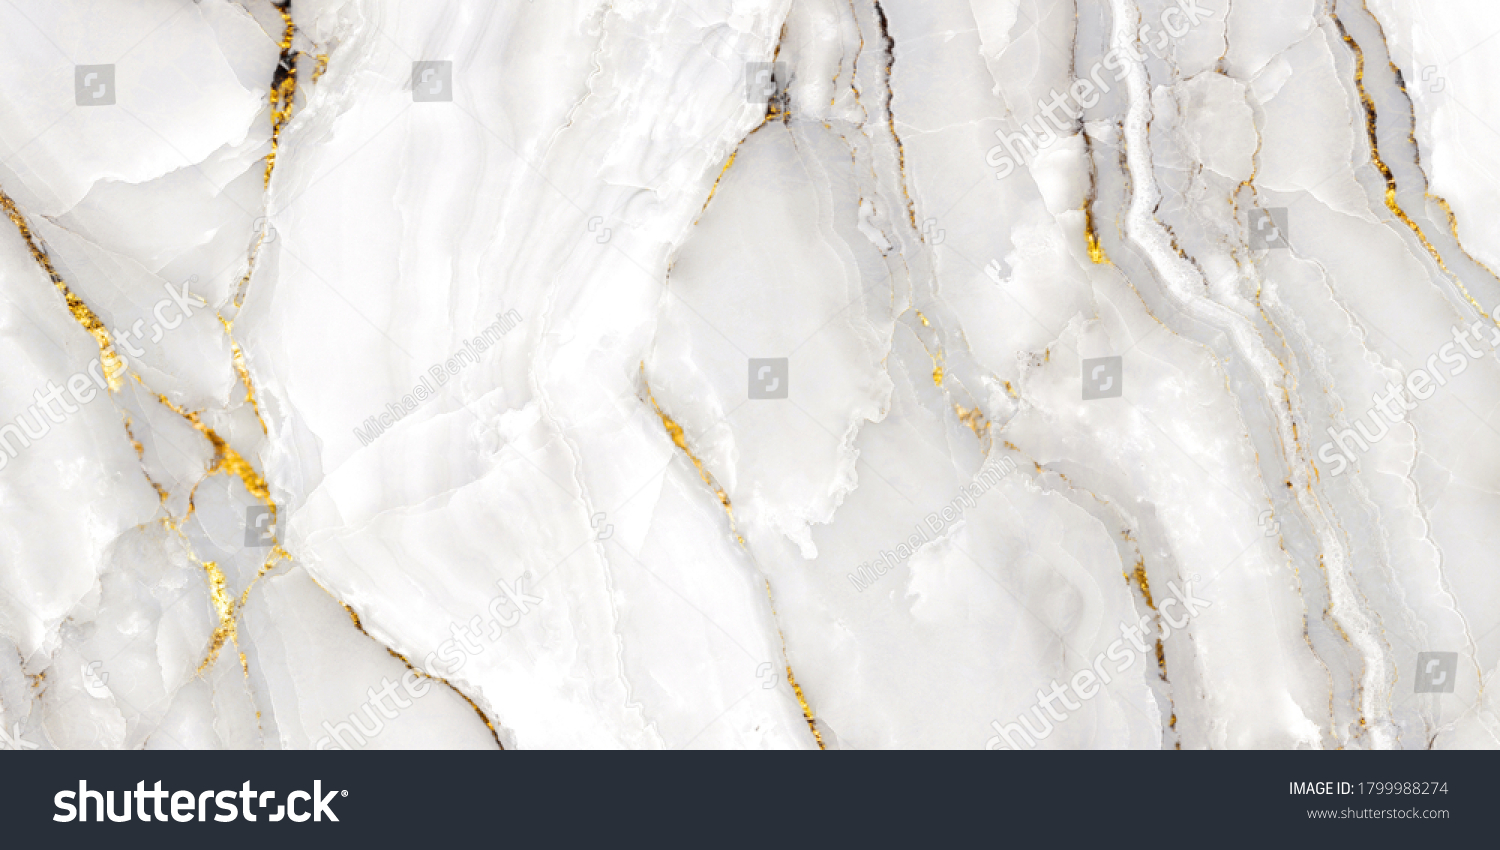 white carrara statuario marble texture background, calacatta glossy marble with grey streaks, satvario tiles, banco superwhite, ittalian blanco catedra stone texture for digital wall and floor tiles #1799988274